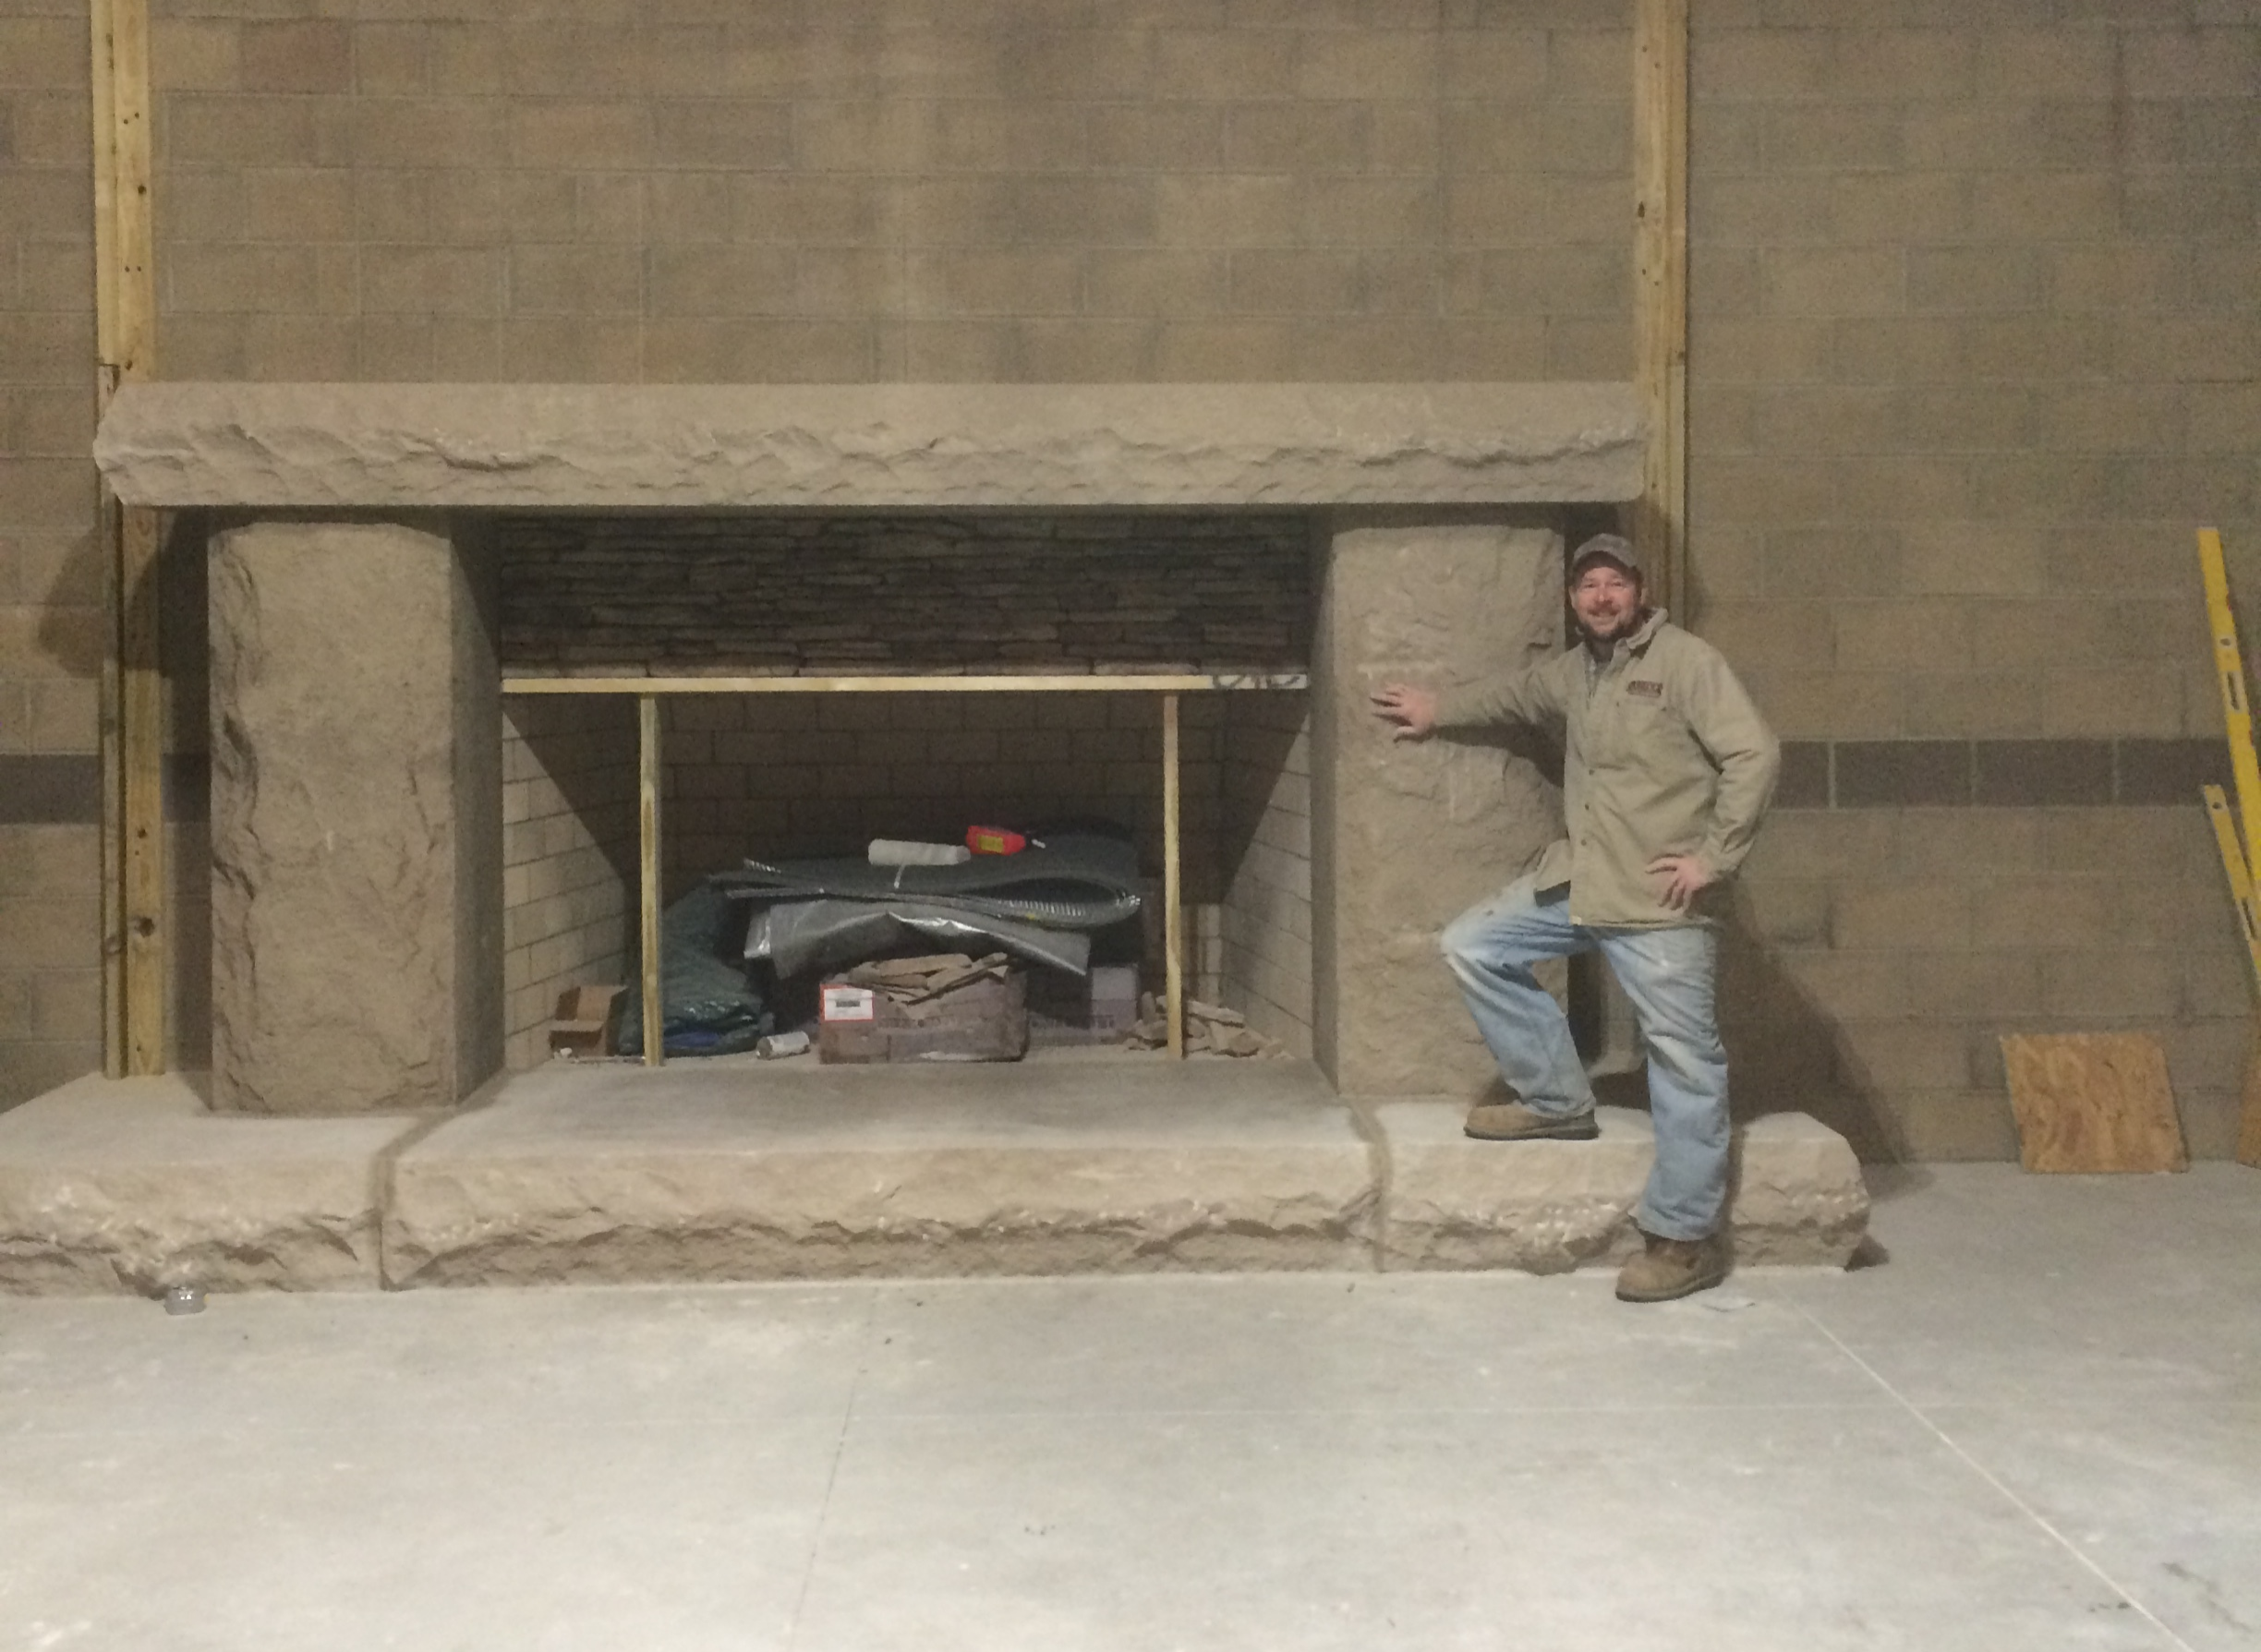 Derek Spurlock with a natural stone fireplace